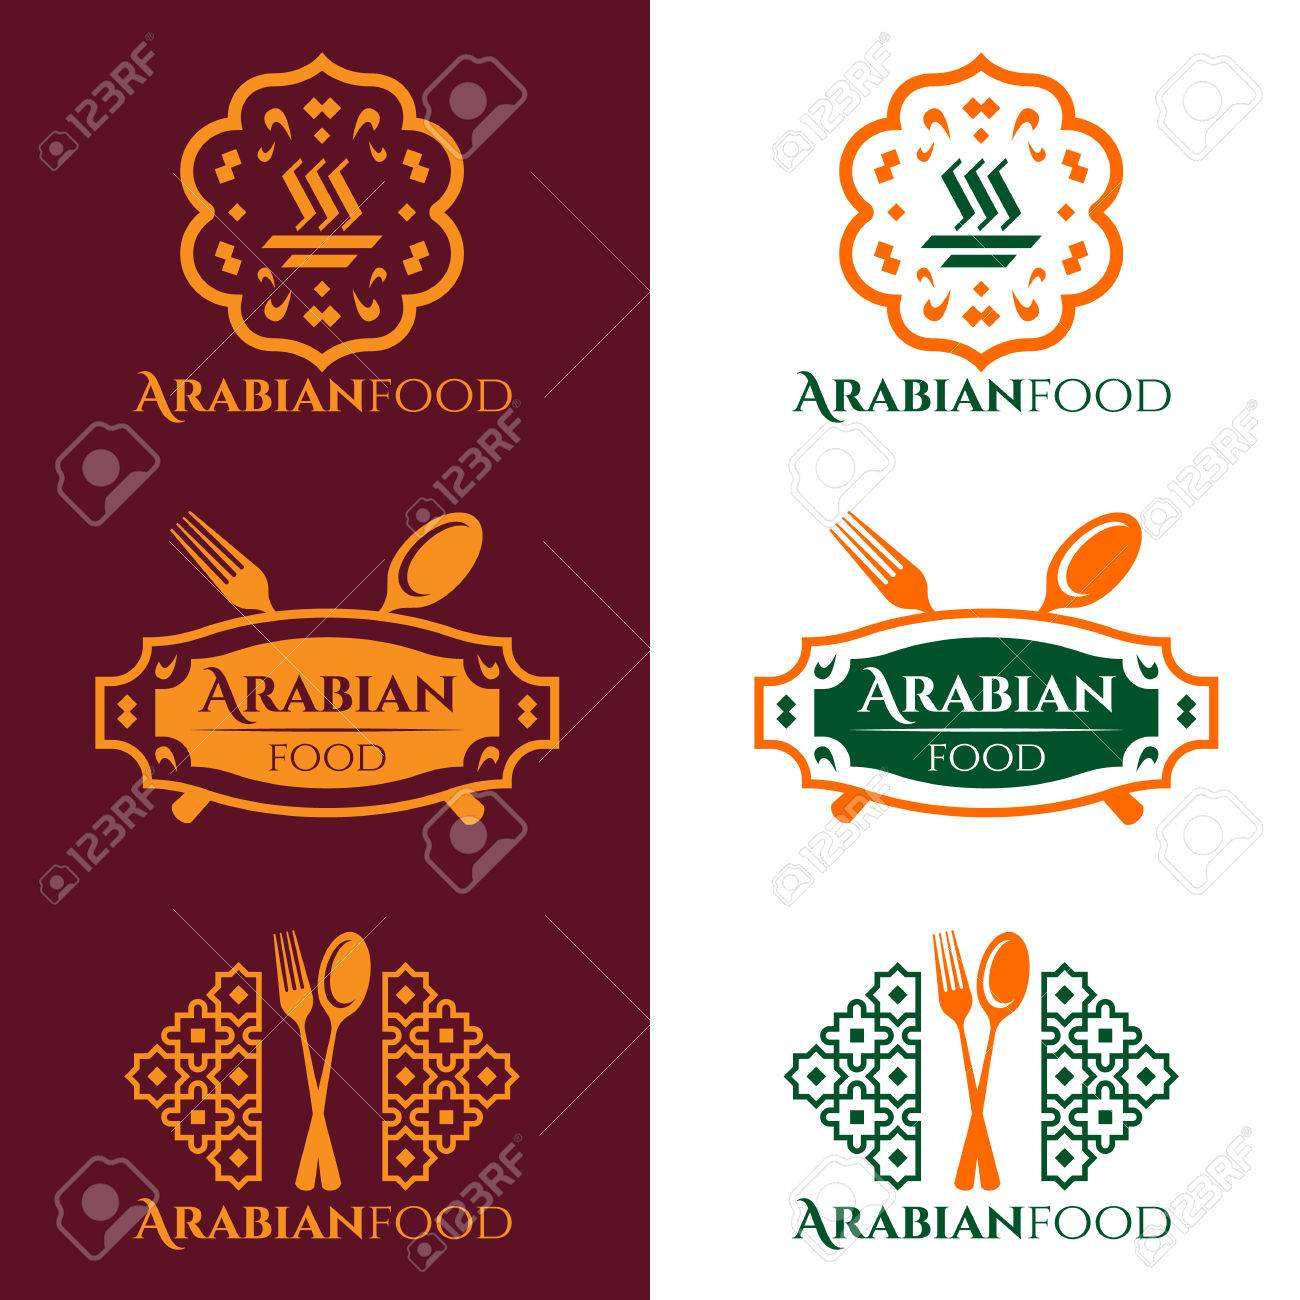 Arabian food and restaurant logo vector design royalty free arabian food and restaurant logo vector design stock vector 74694792 buycottarizona Image collections